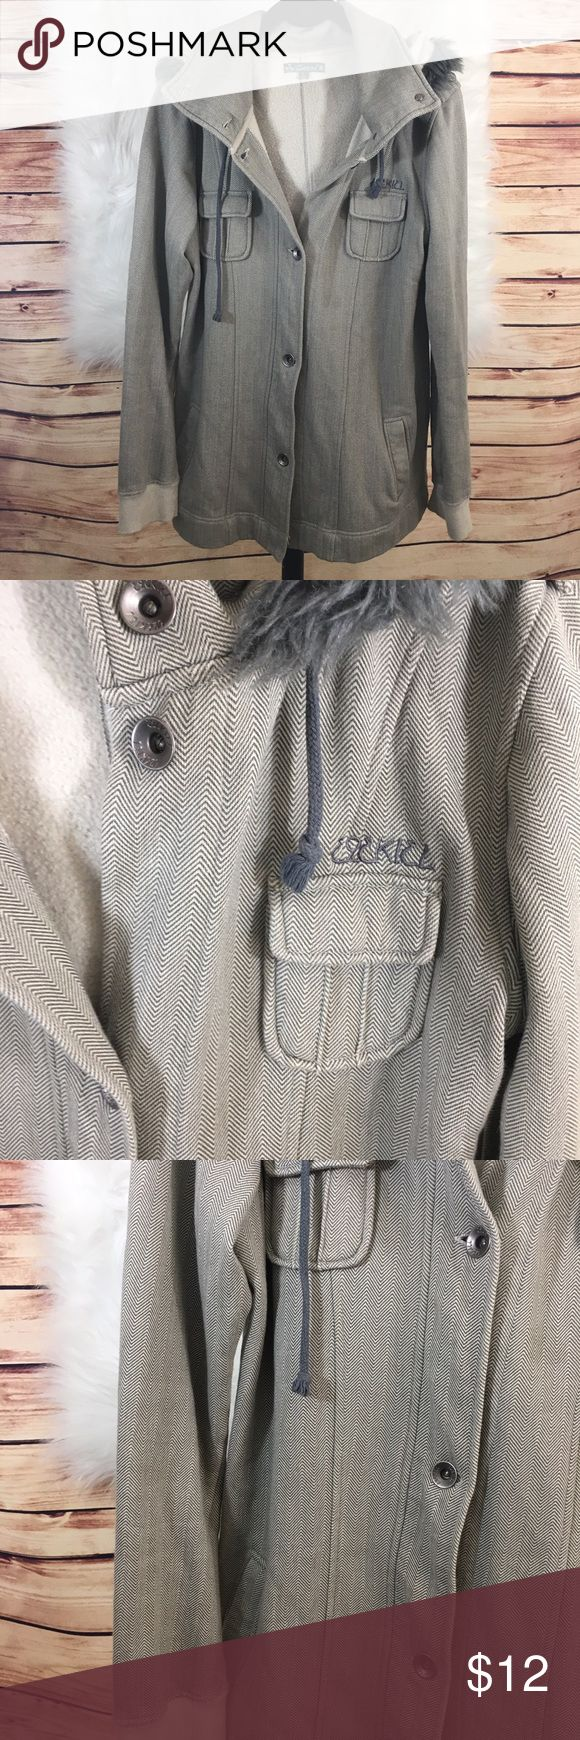 Ezekiel herringbone jacket (preloved) Size: L Brand: Ezekiel Color: grey  Details: herringbone design / front pockets/ hood / silver hardware Condition: preloved • Need measurements? Just ask. ✨Build a bundle with all your likes and use the automatic bundle discount -or- make me an offer✨ Ezekiel Jackets & Coats